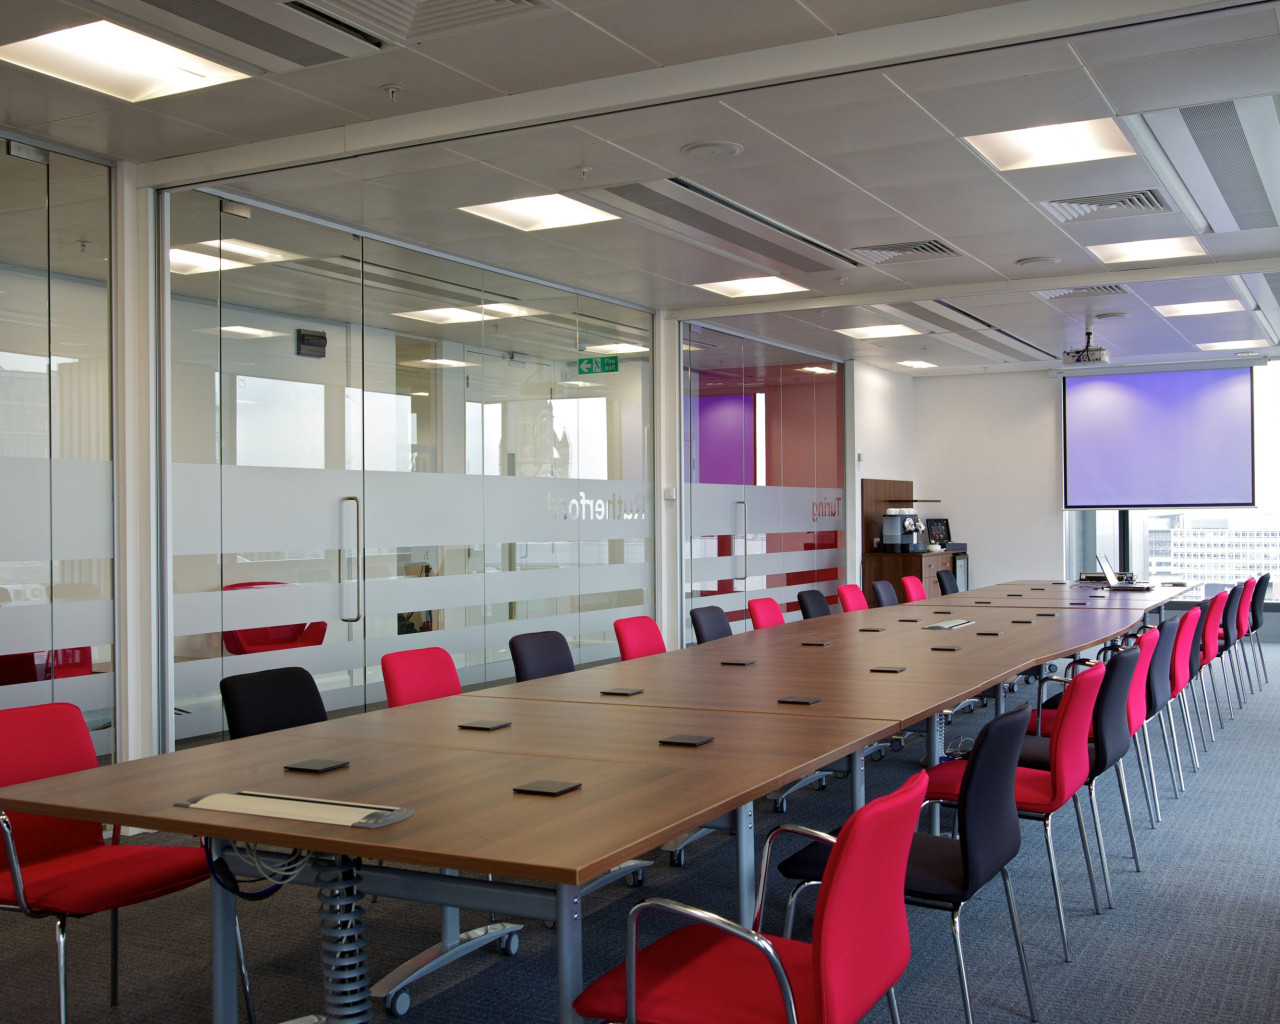 Office interior redesign interior office design for Redesign office space